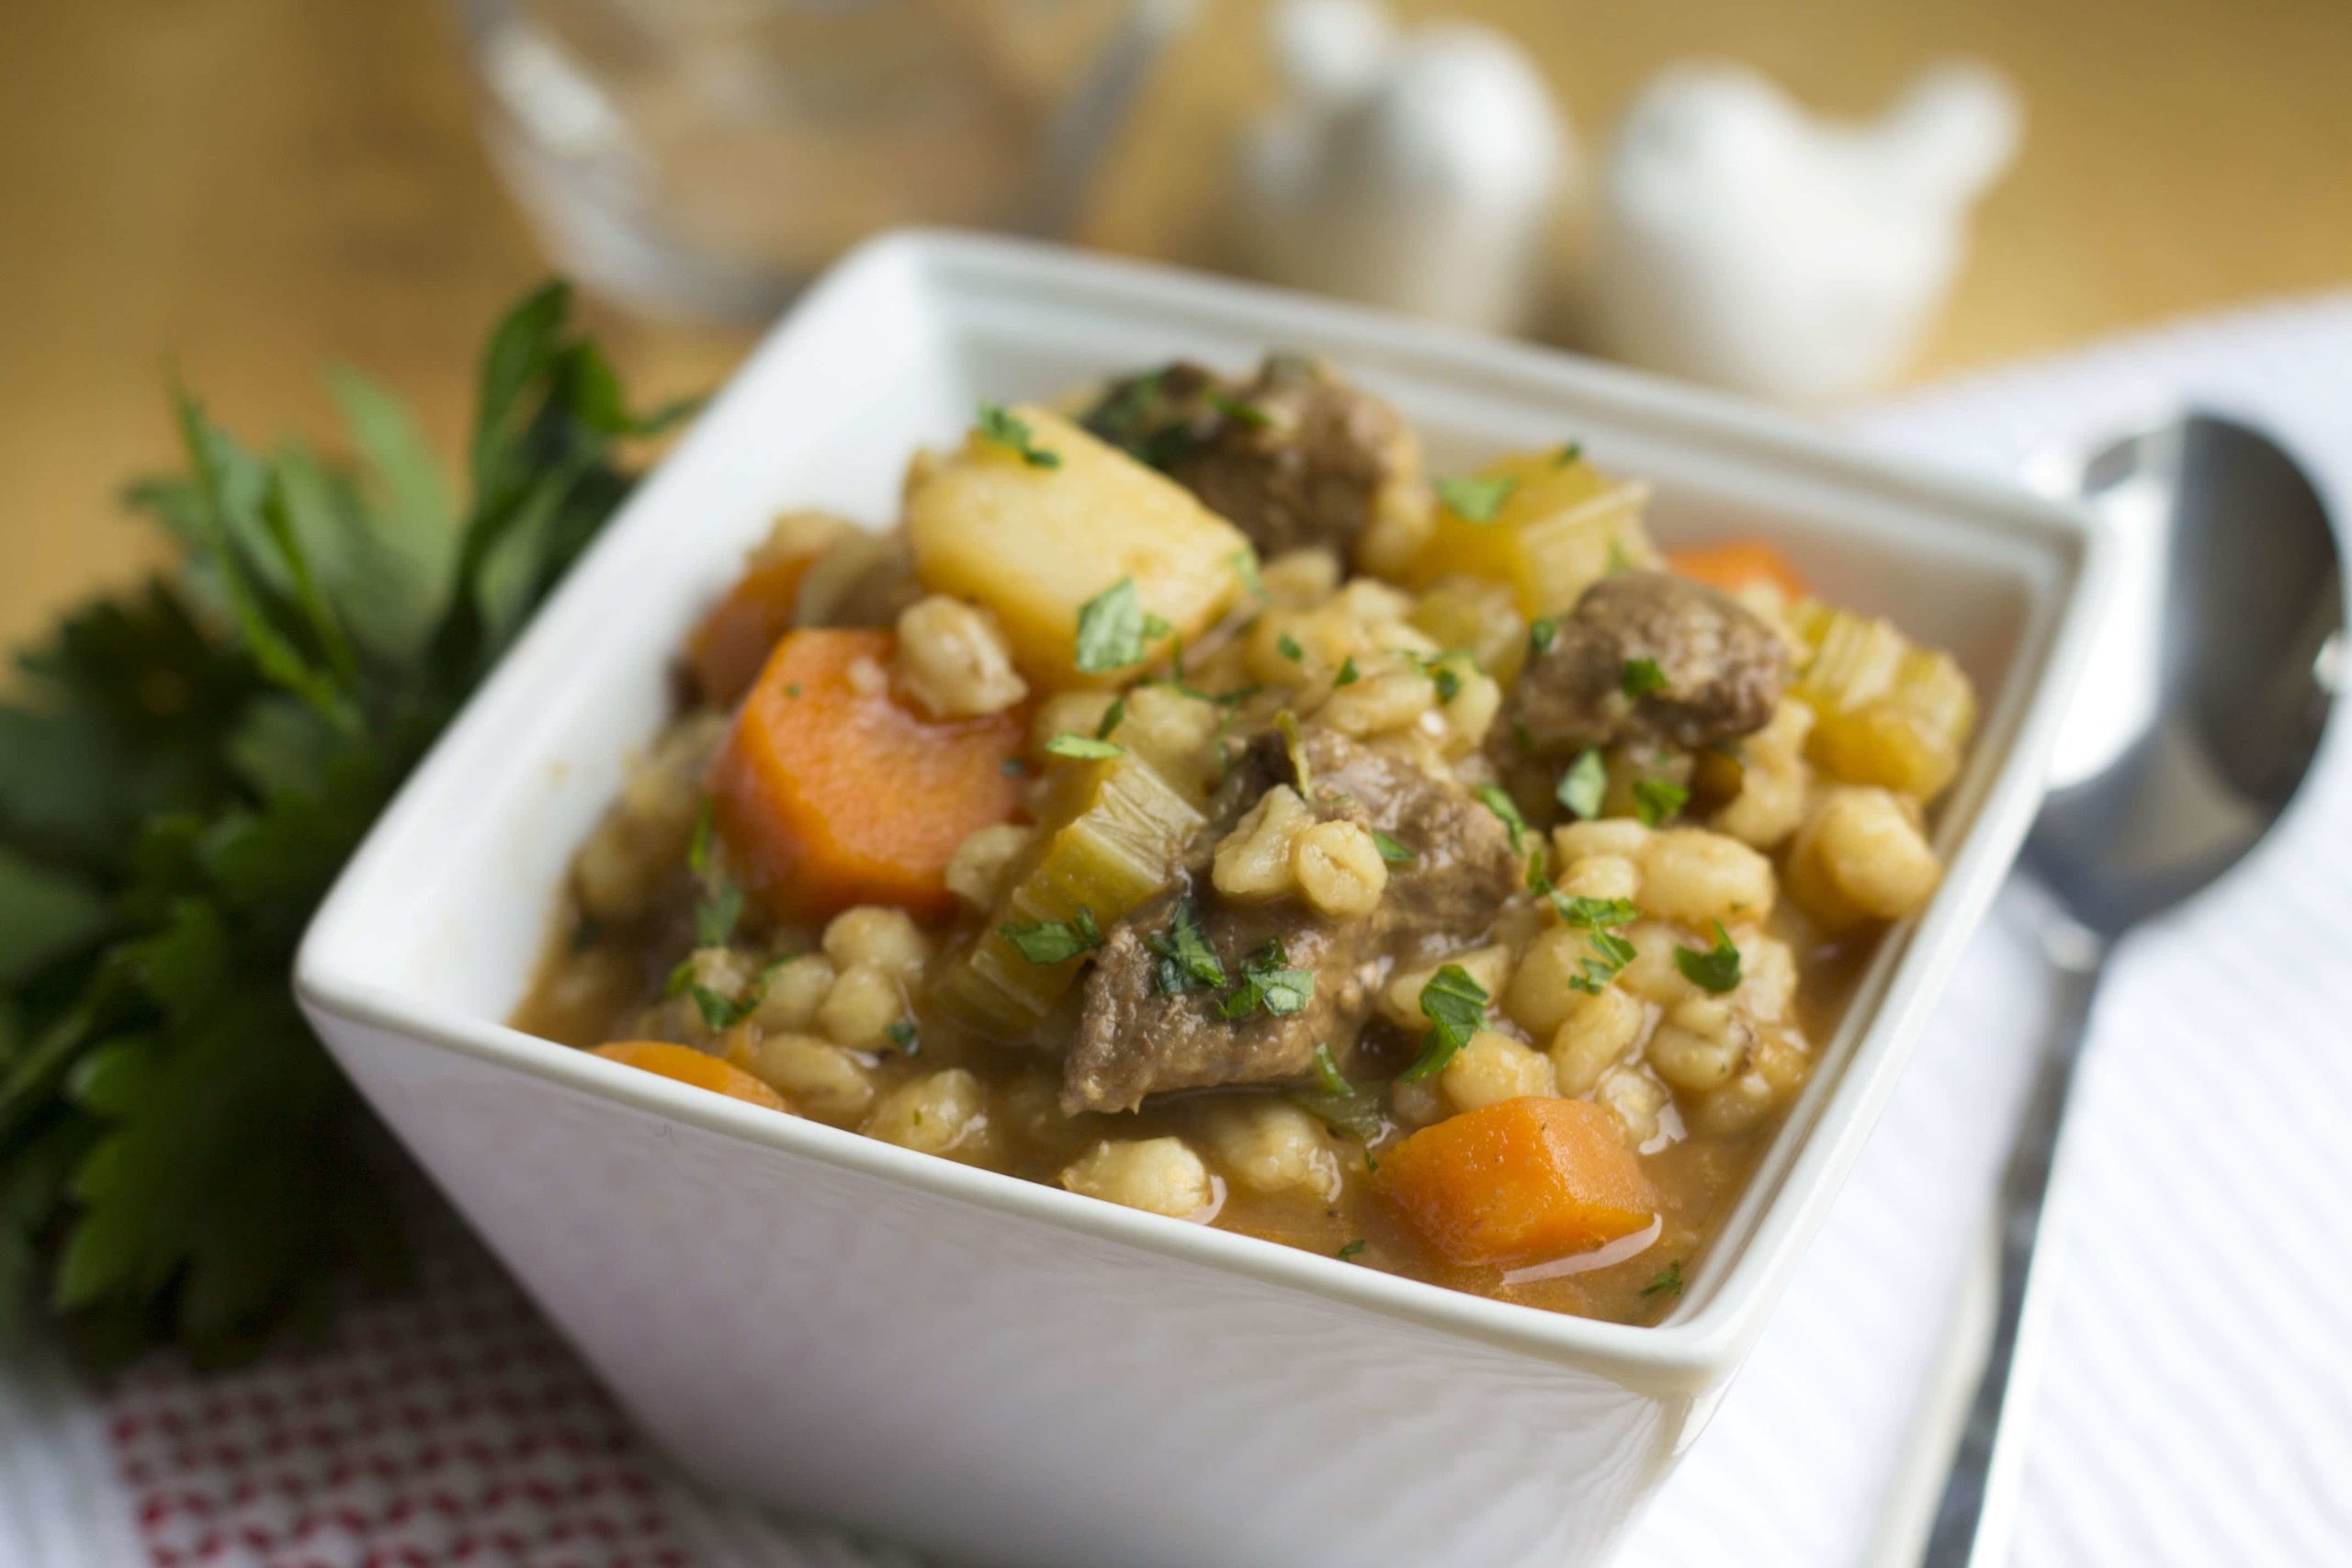 Beef & Barley Soup in a square white bowl with a spoon next to it.